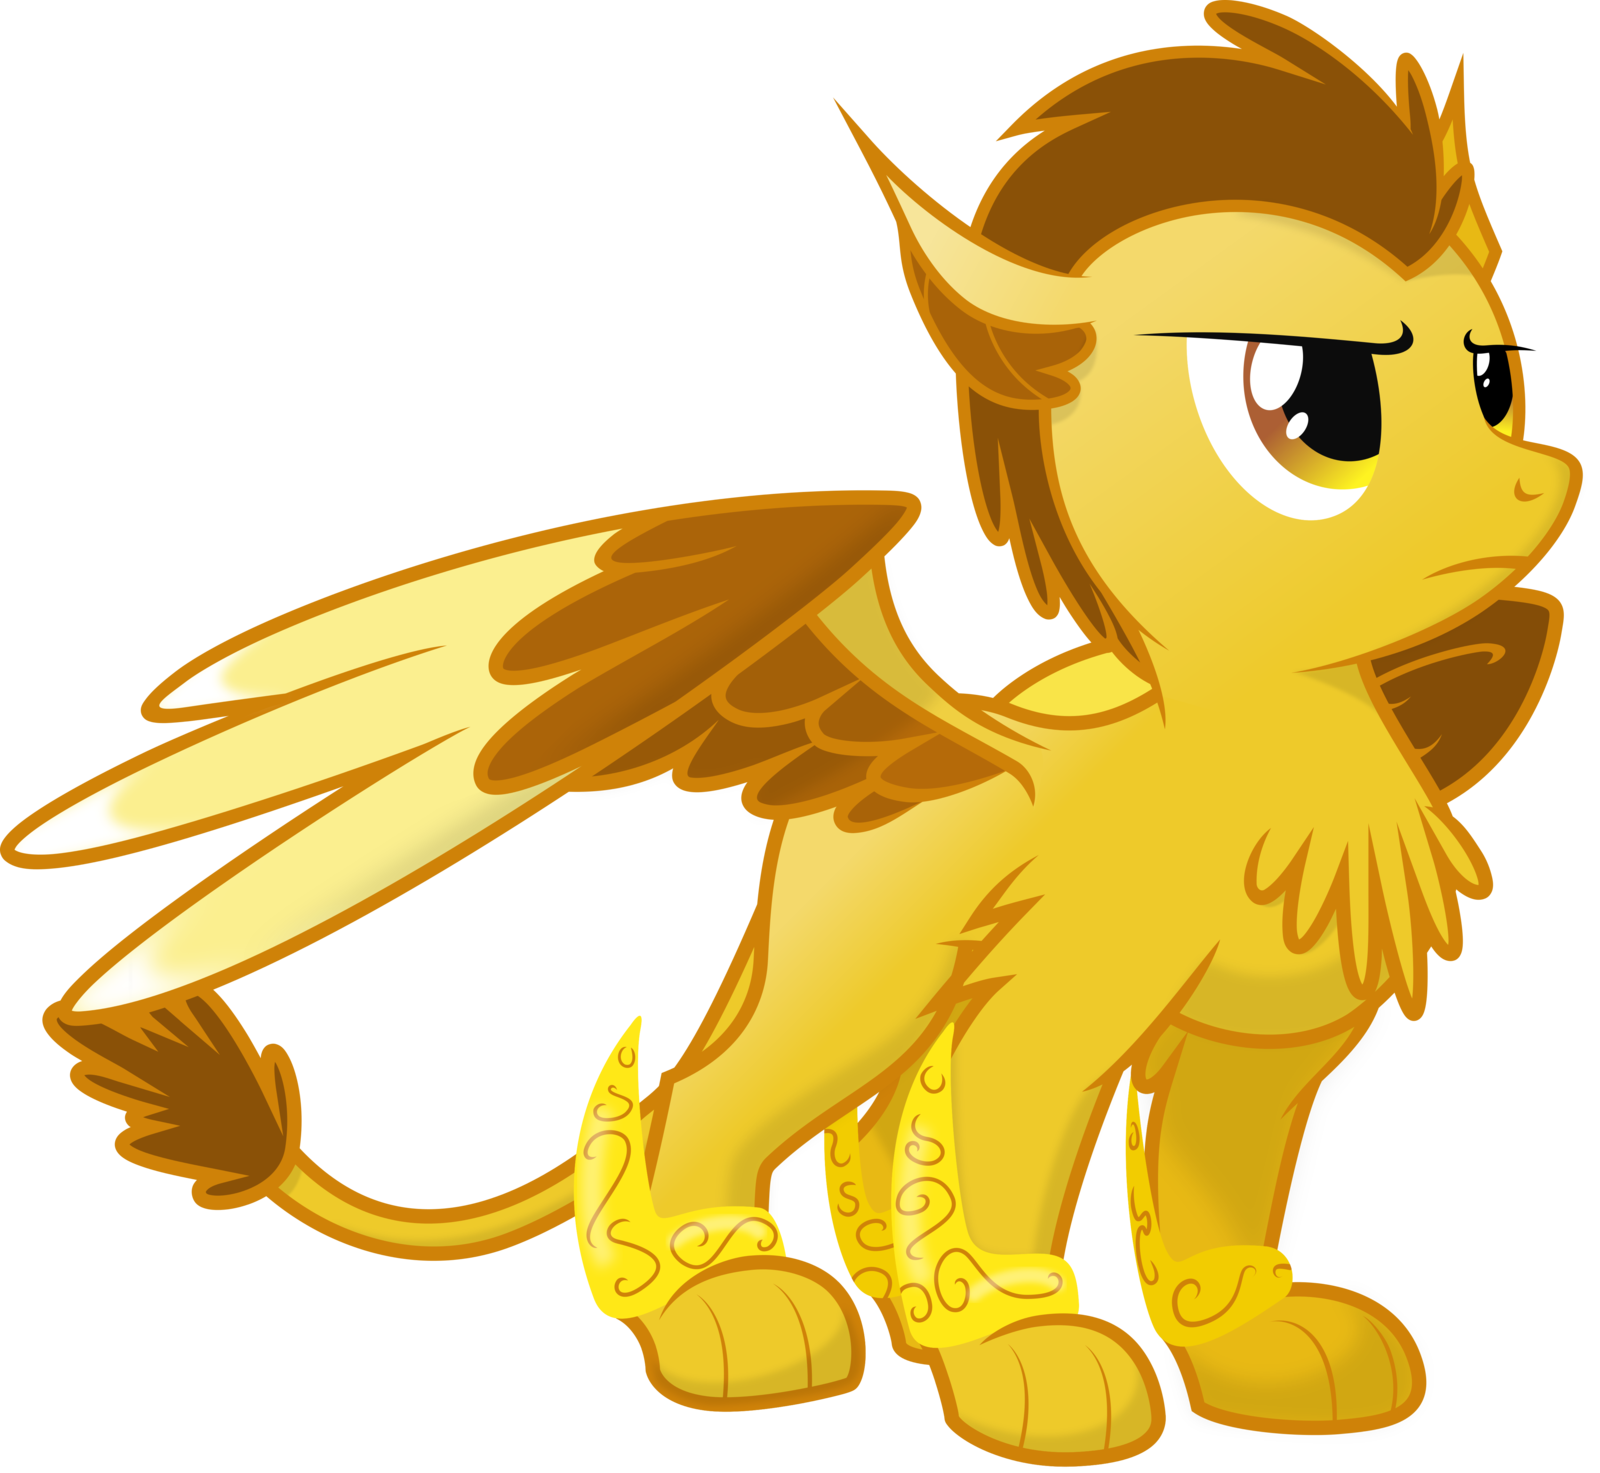 Lion heart clipart clipart royalty free Creatures of Equestria - Dustin's Adventures - Fimfiction clipart royalty free